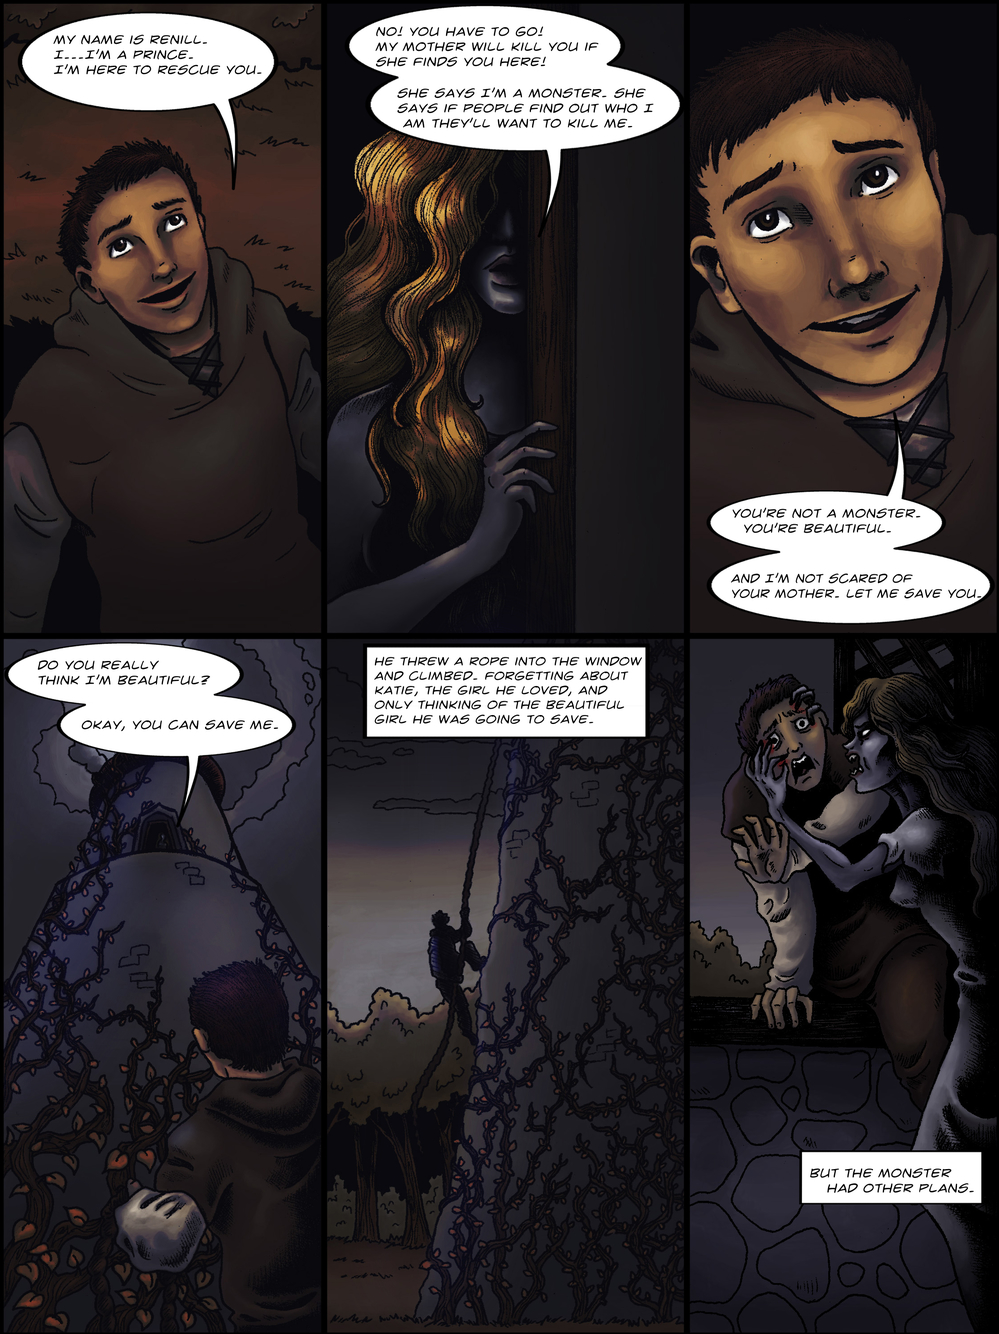 THE TOWER page 5 - story 1 in The Book of Lies